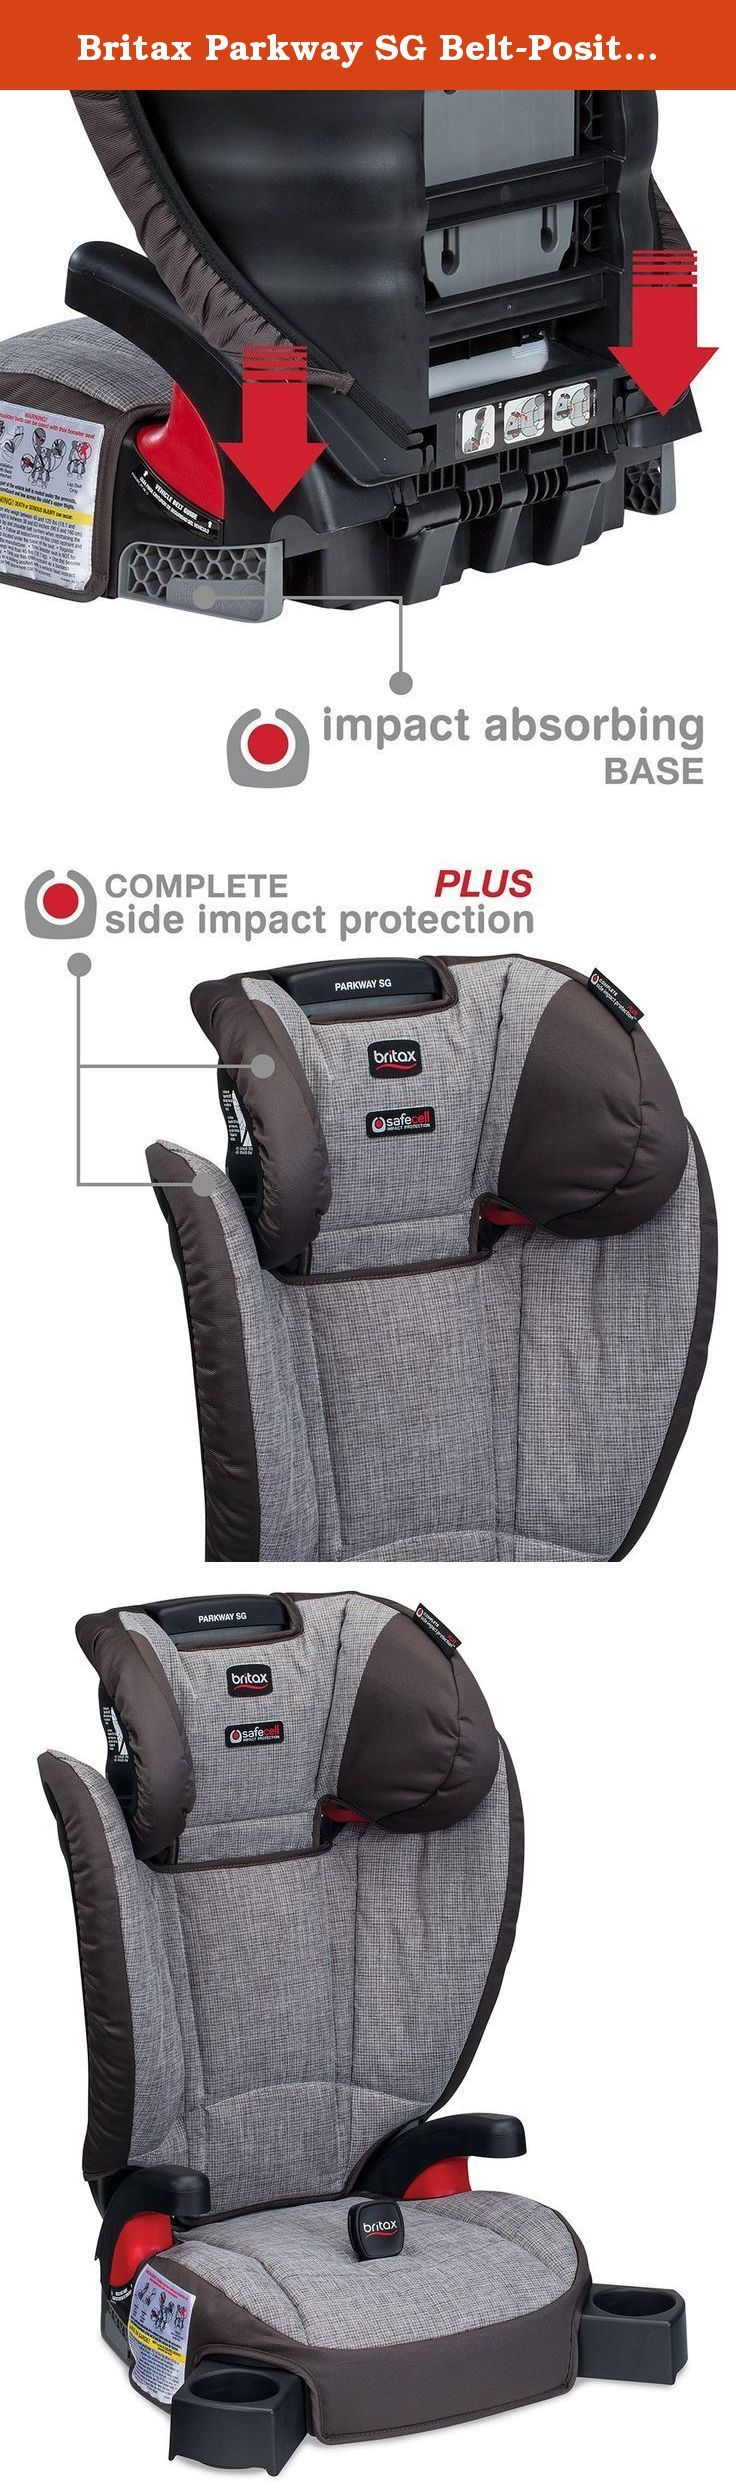 Britax Parkway SG Belt-Positioning Booster Car Seat - Gridline. The parkway SG provides all the comfort and convenience you look for in a belt-positioning booster seat and backs it up with the trusted safety only britax can deliver. Safe cell impact protection surrounds your child in safety components that work together to protect well beyond the established federal safety standards. Complete side impact protection plus provides an advanced layer of protection with a foam-lined, high-back...